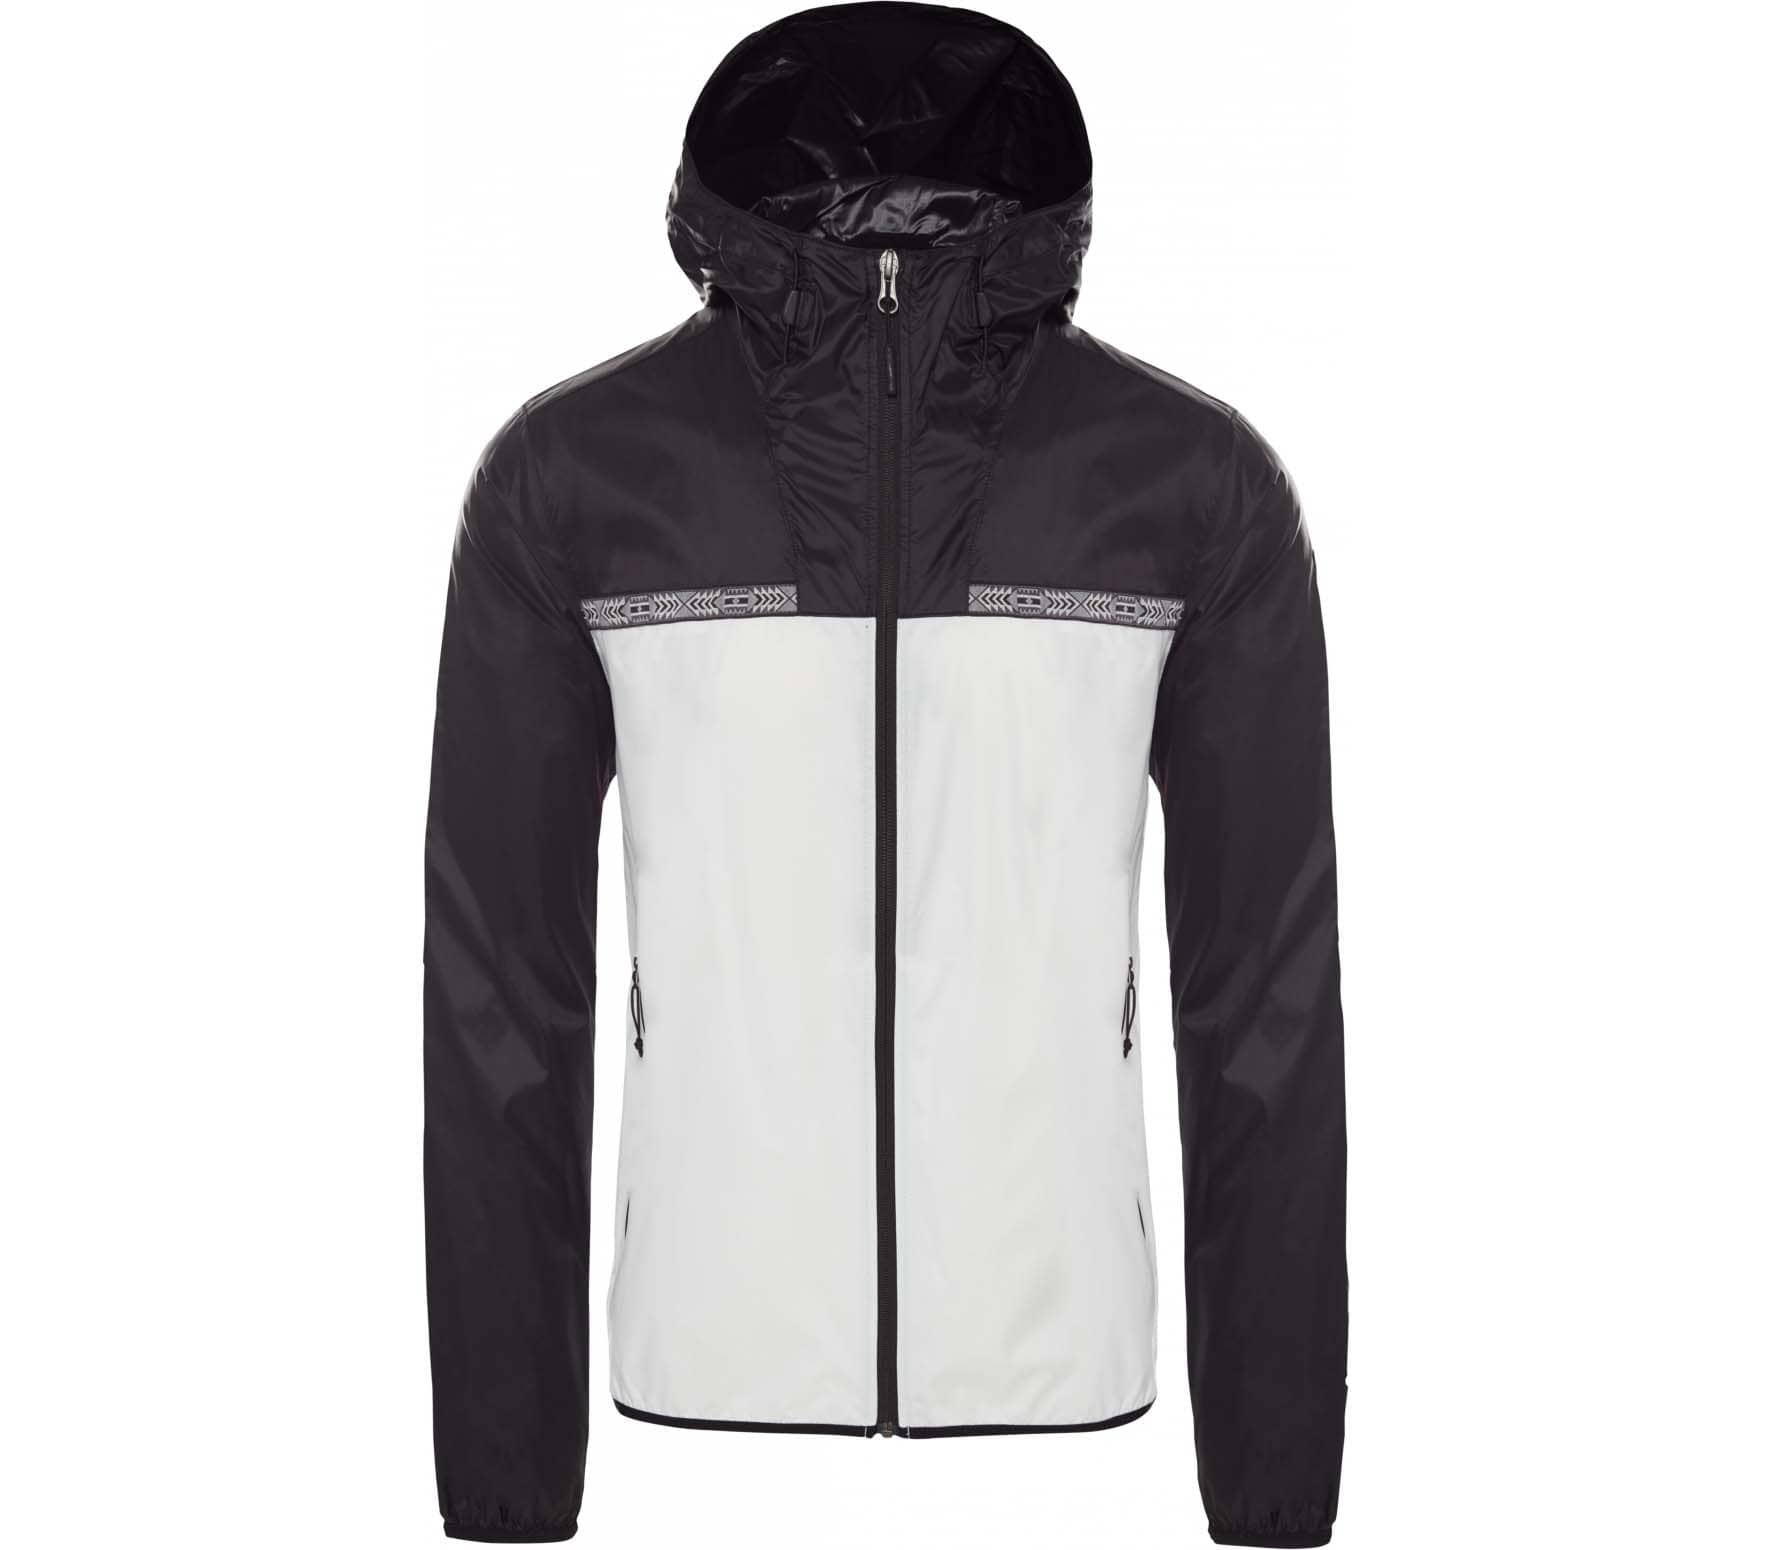 c254b4732f The North Face The North Face Novelty Cyclone 2.0 Herren Jacke ...